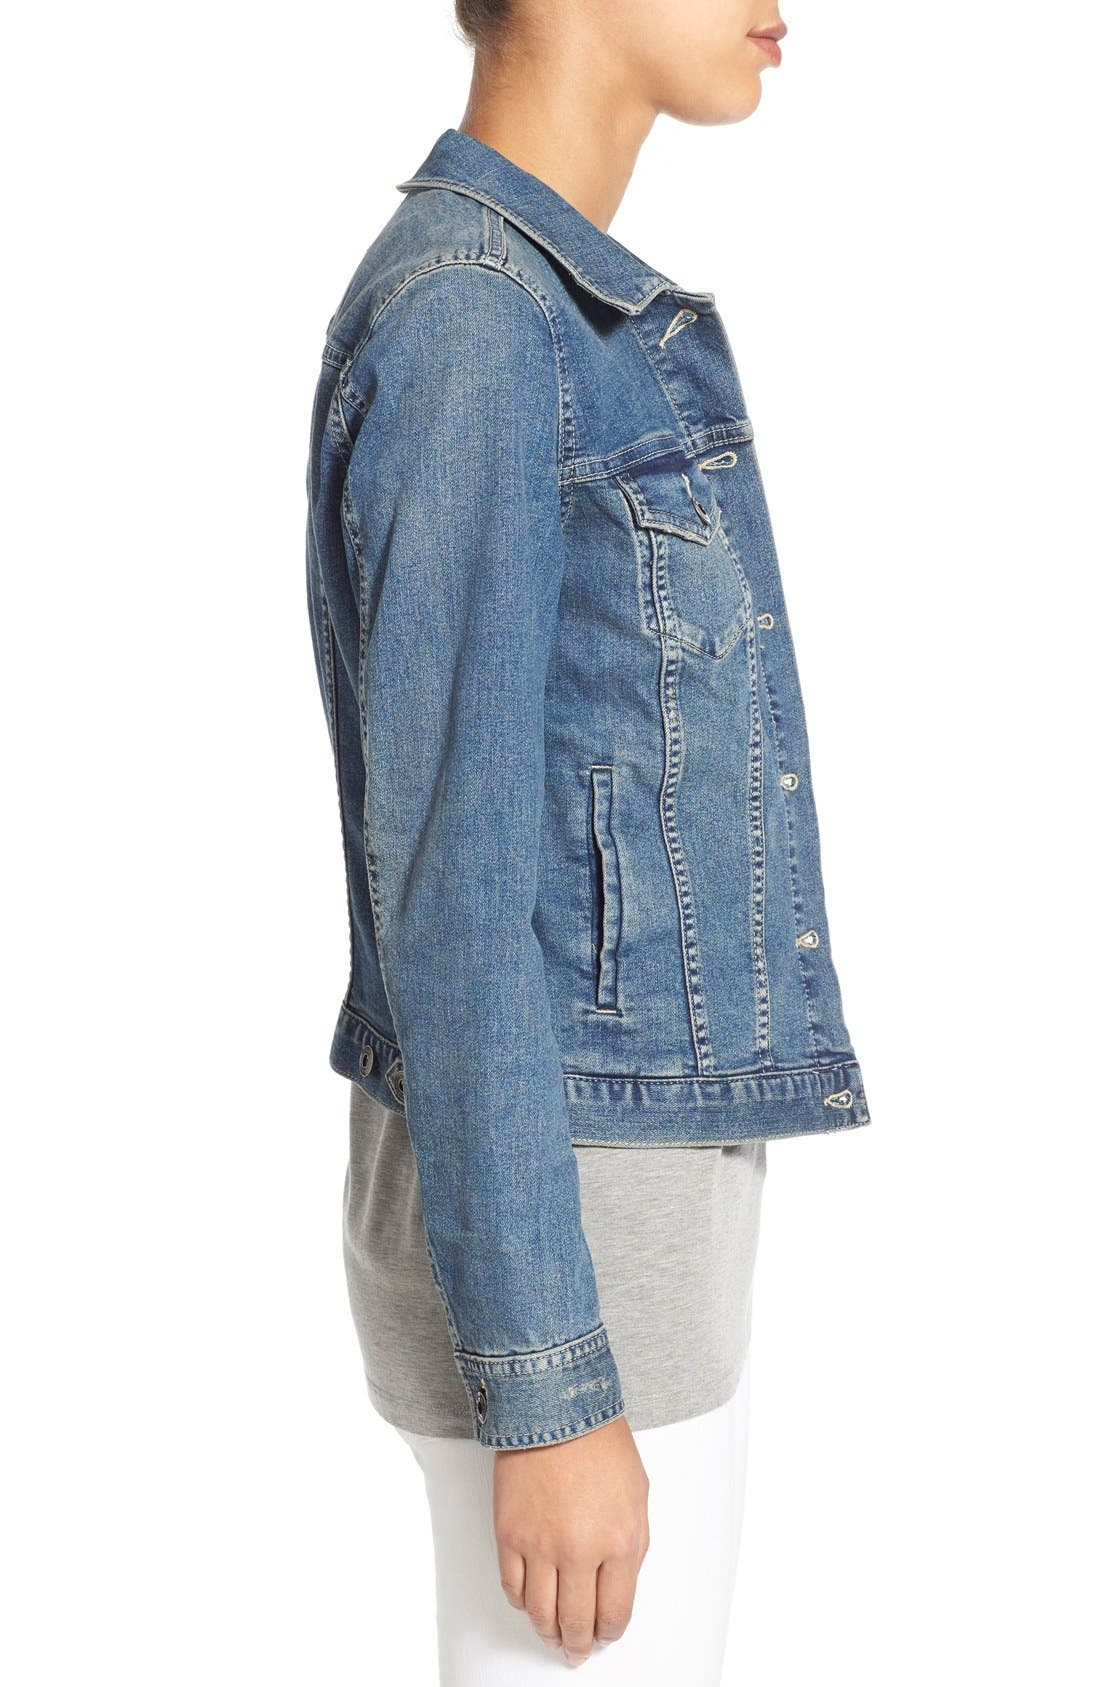 Two by Vince Camuto Jean Jacket,                             Alternate thumbnail 8, color,                             AUTHENTIC